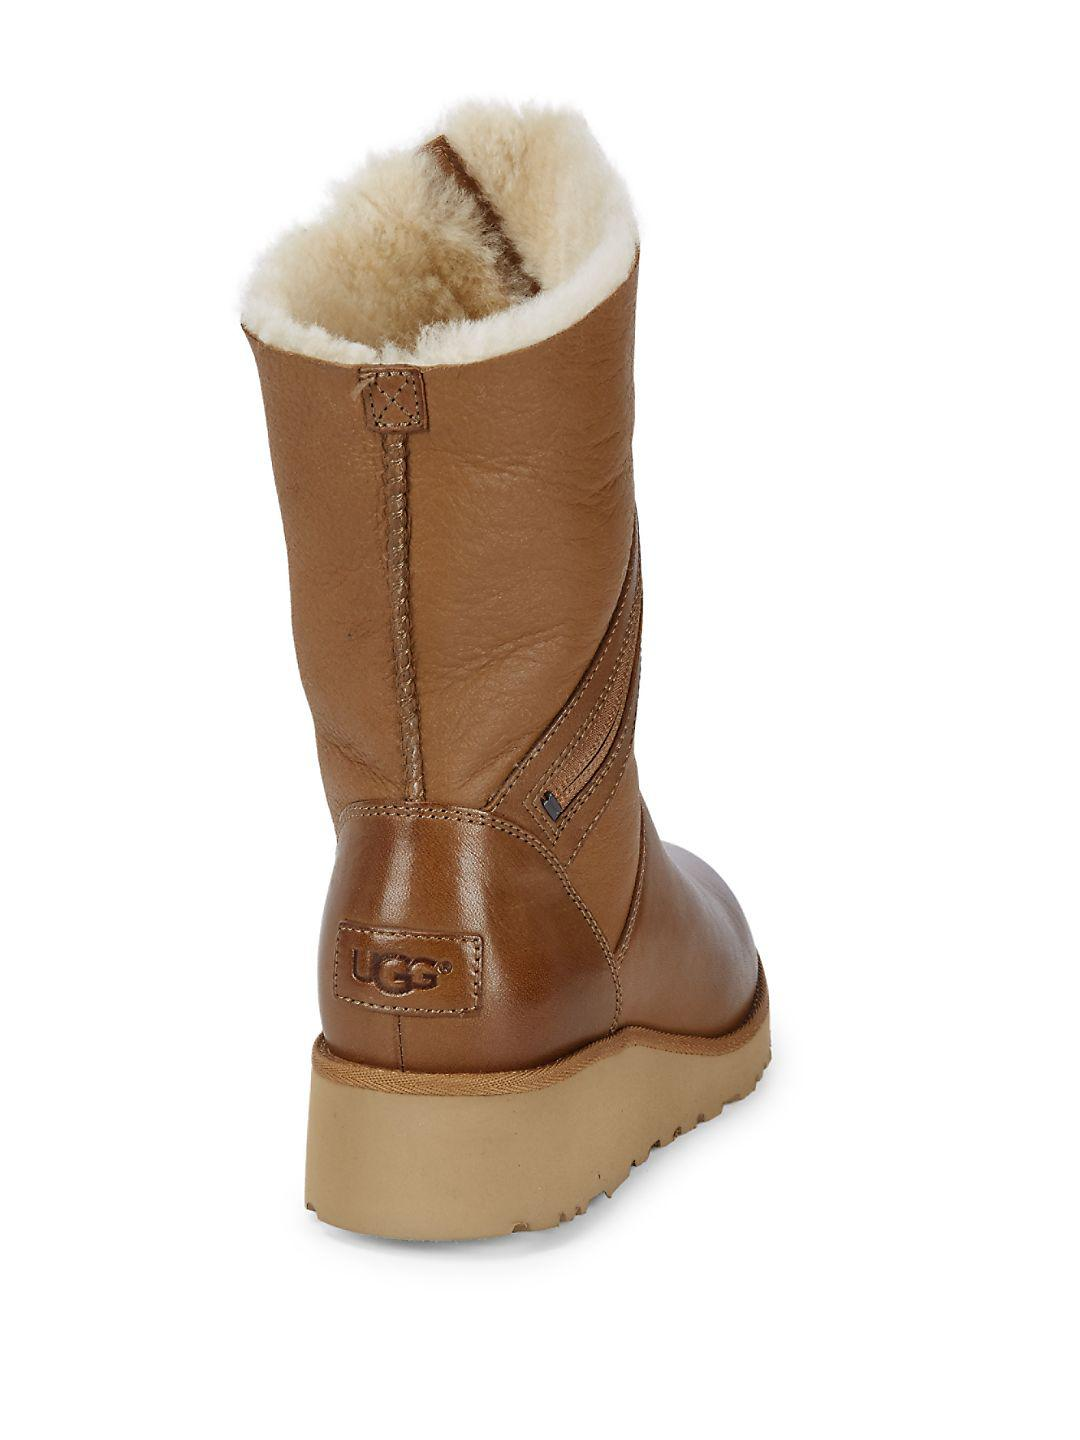 80ad7acd33d Ugg Brown Lorna Demi Wedge Boots